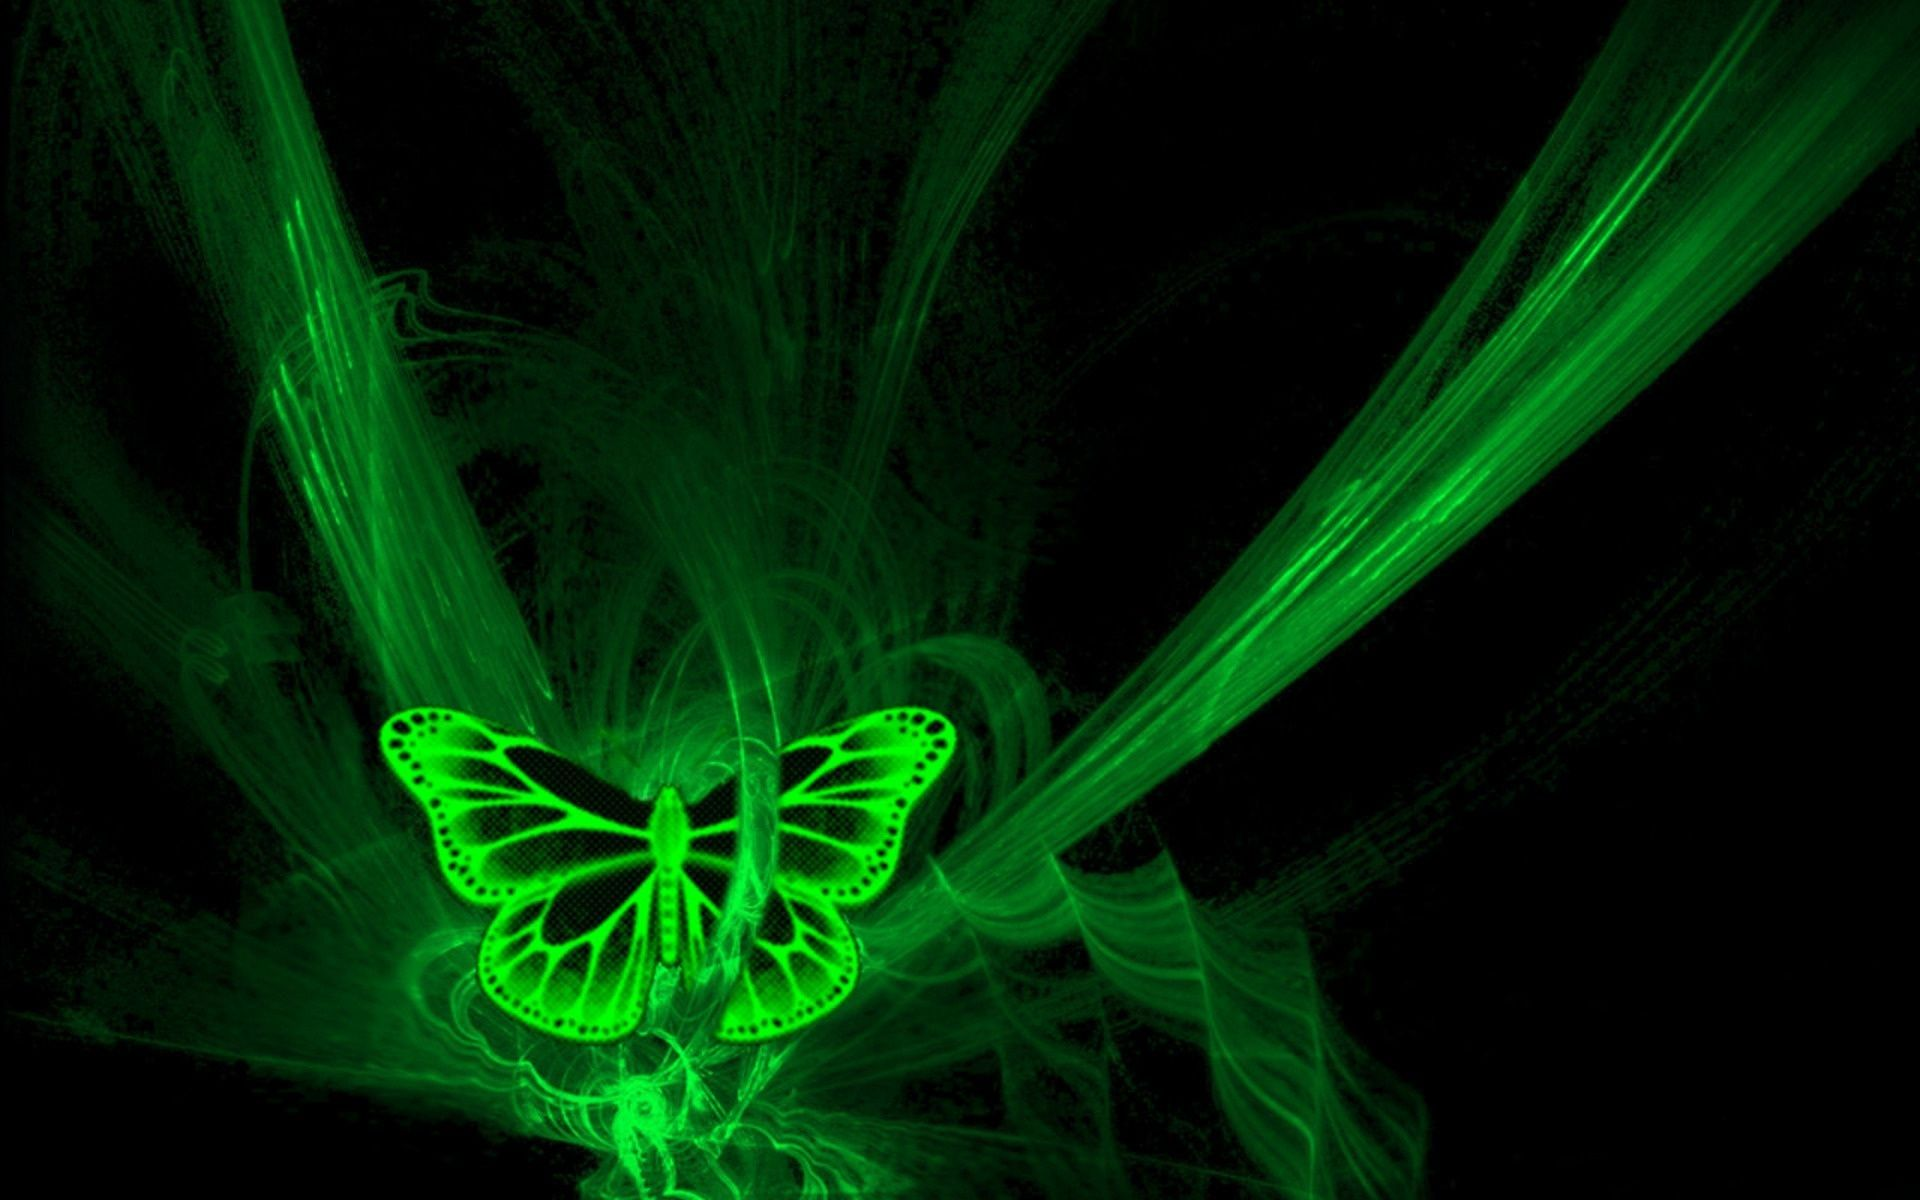 Download Wallpaper Music Neon Green - bc7d827e41d2dd6ea9dc667fd2958dce  Gallery_87224.jpg